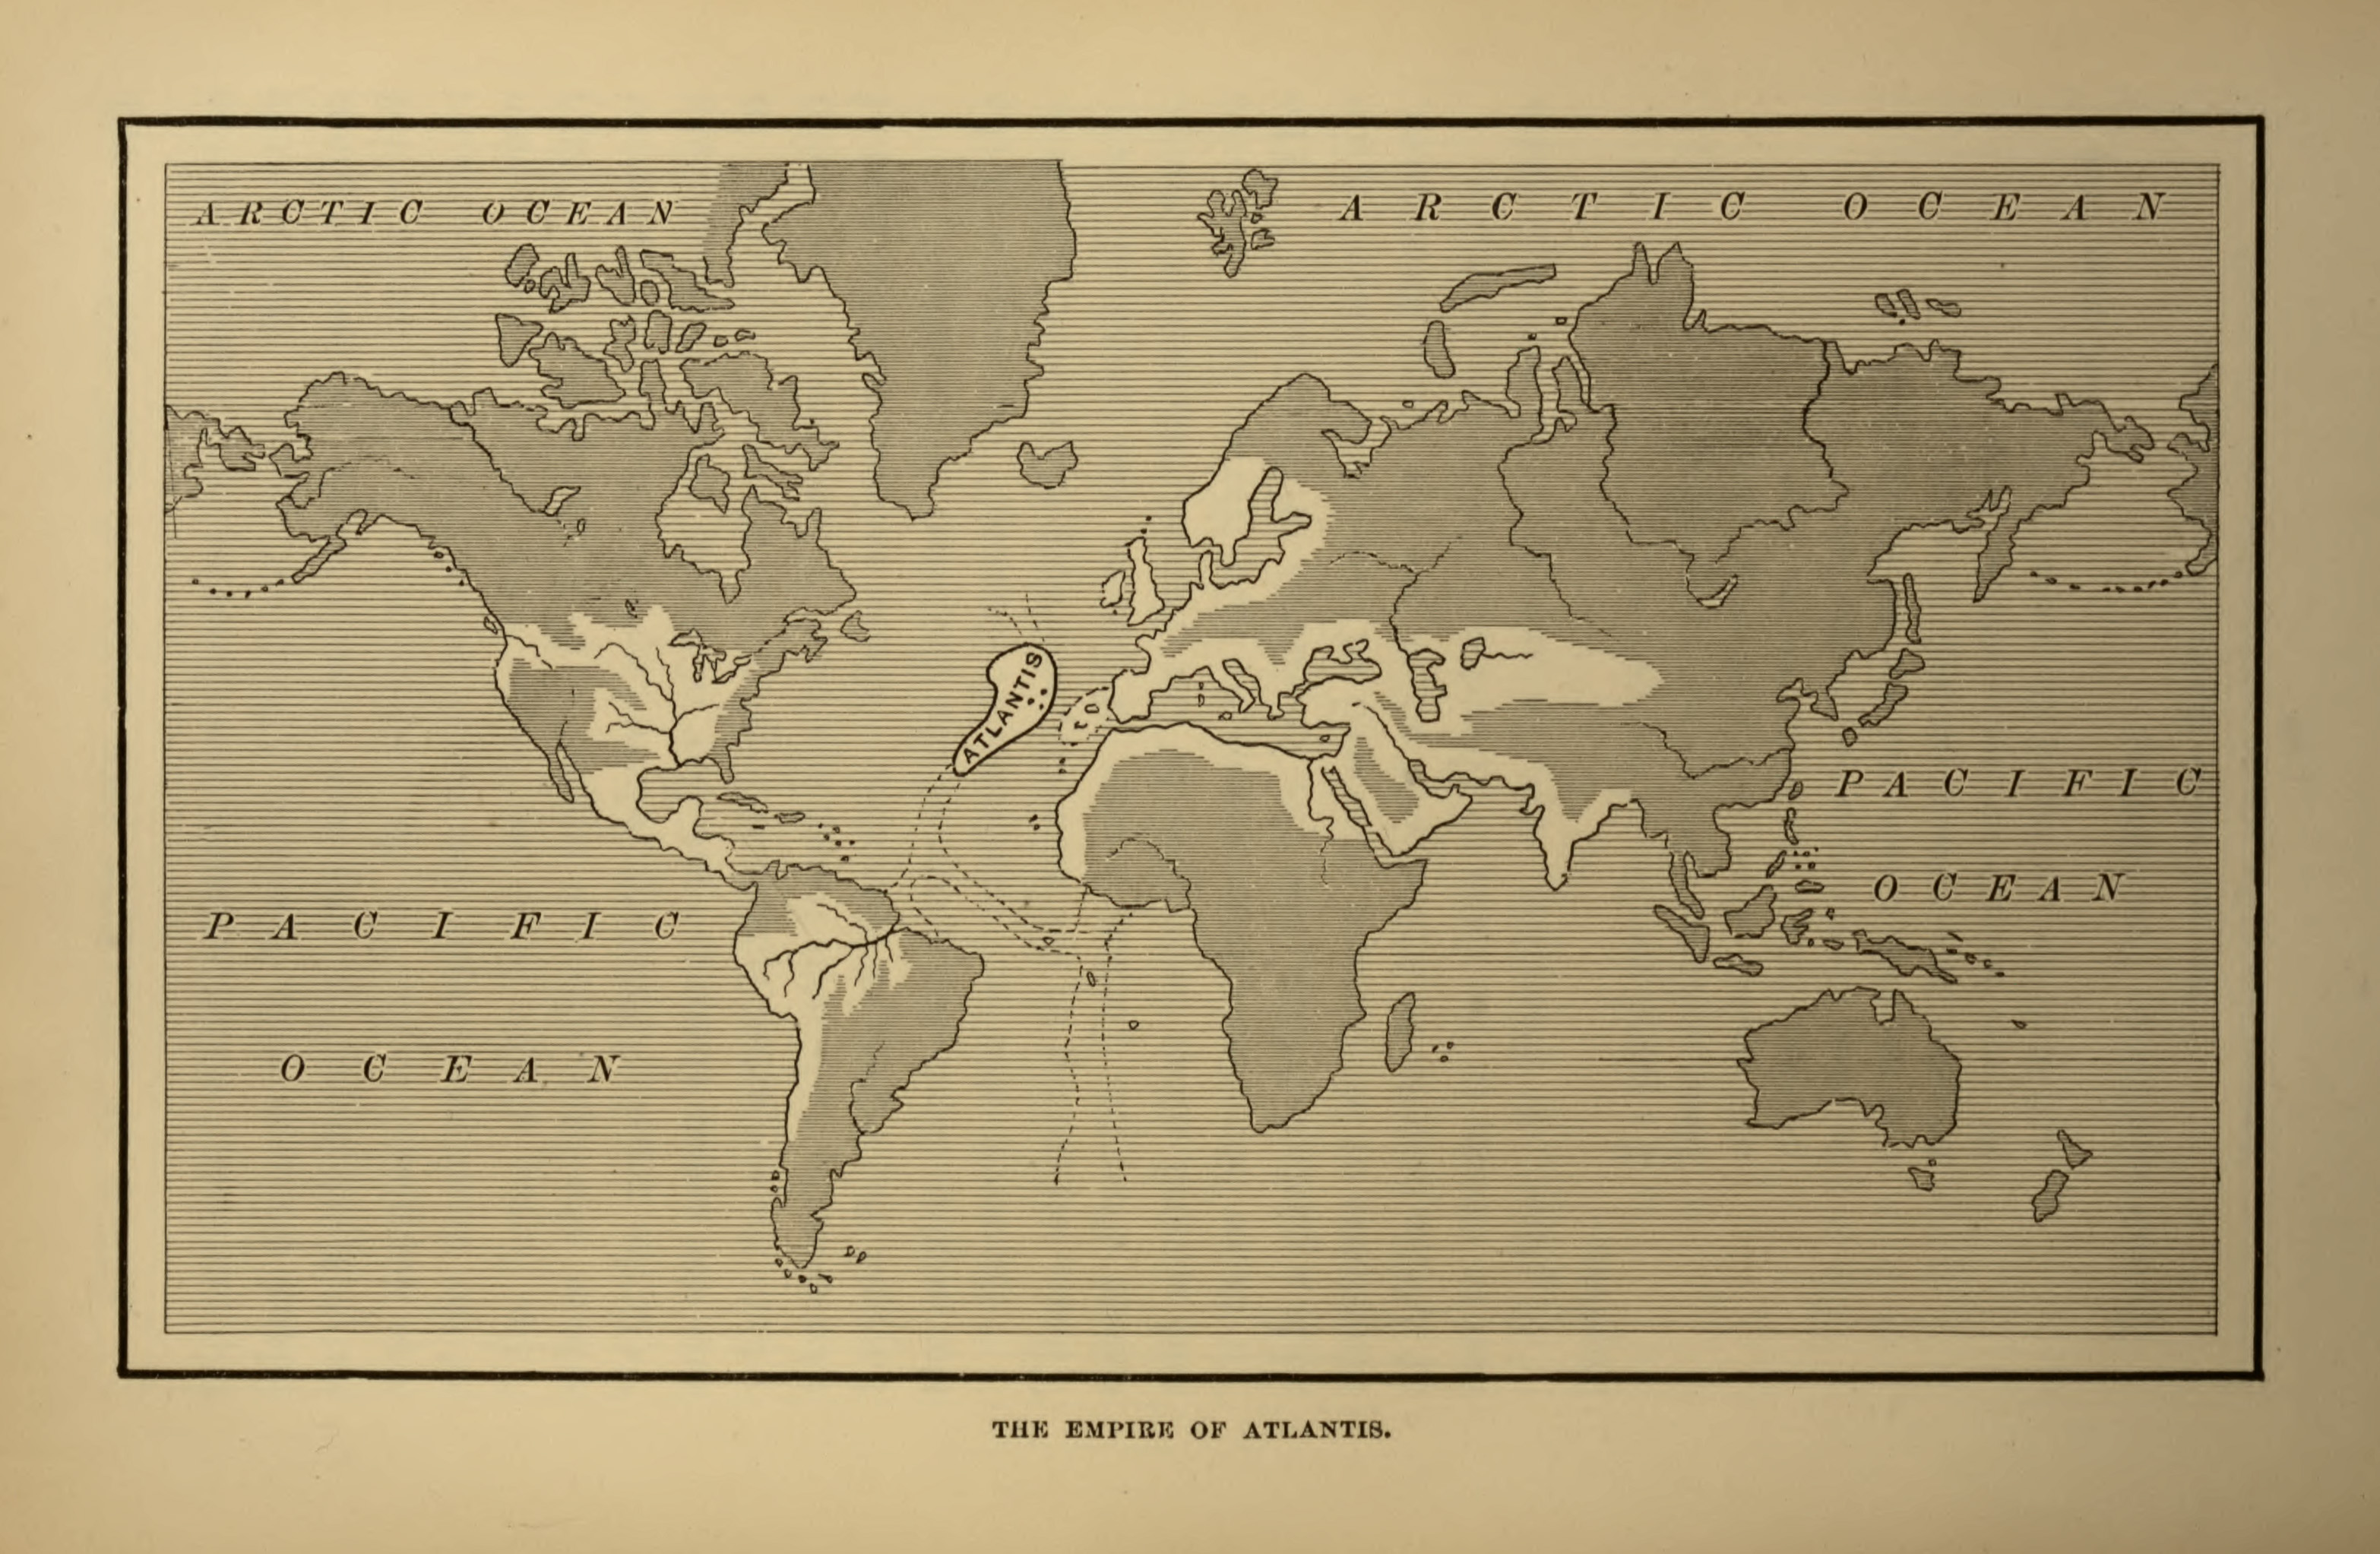 File:Atlantis map 1882.jpg